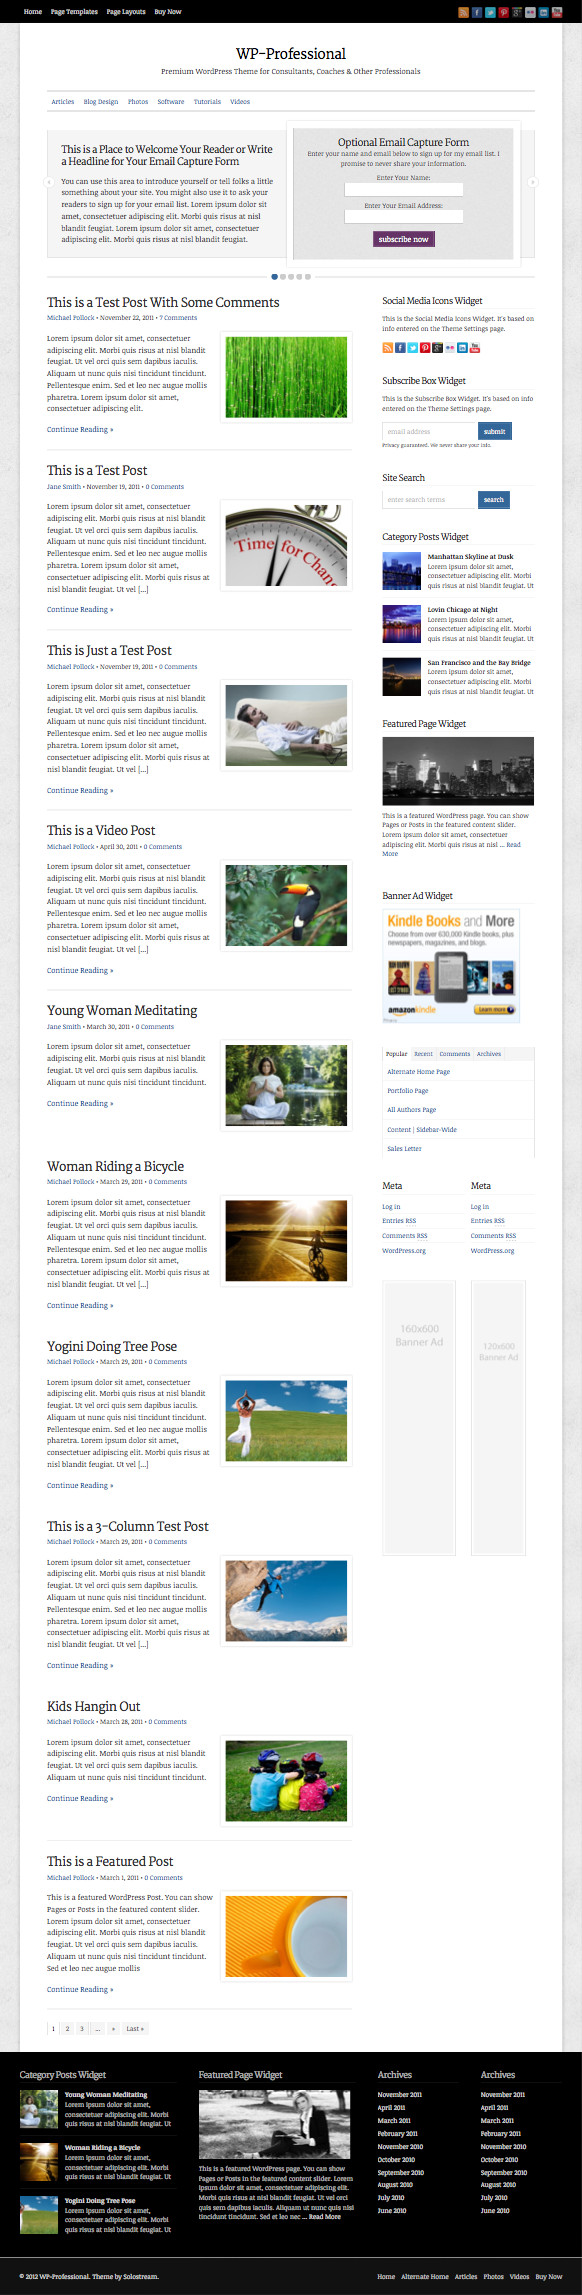 WP Professional Responsive WordPress Theme